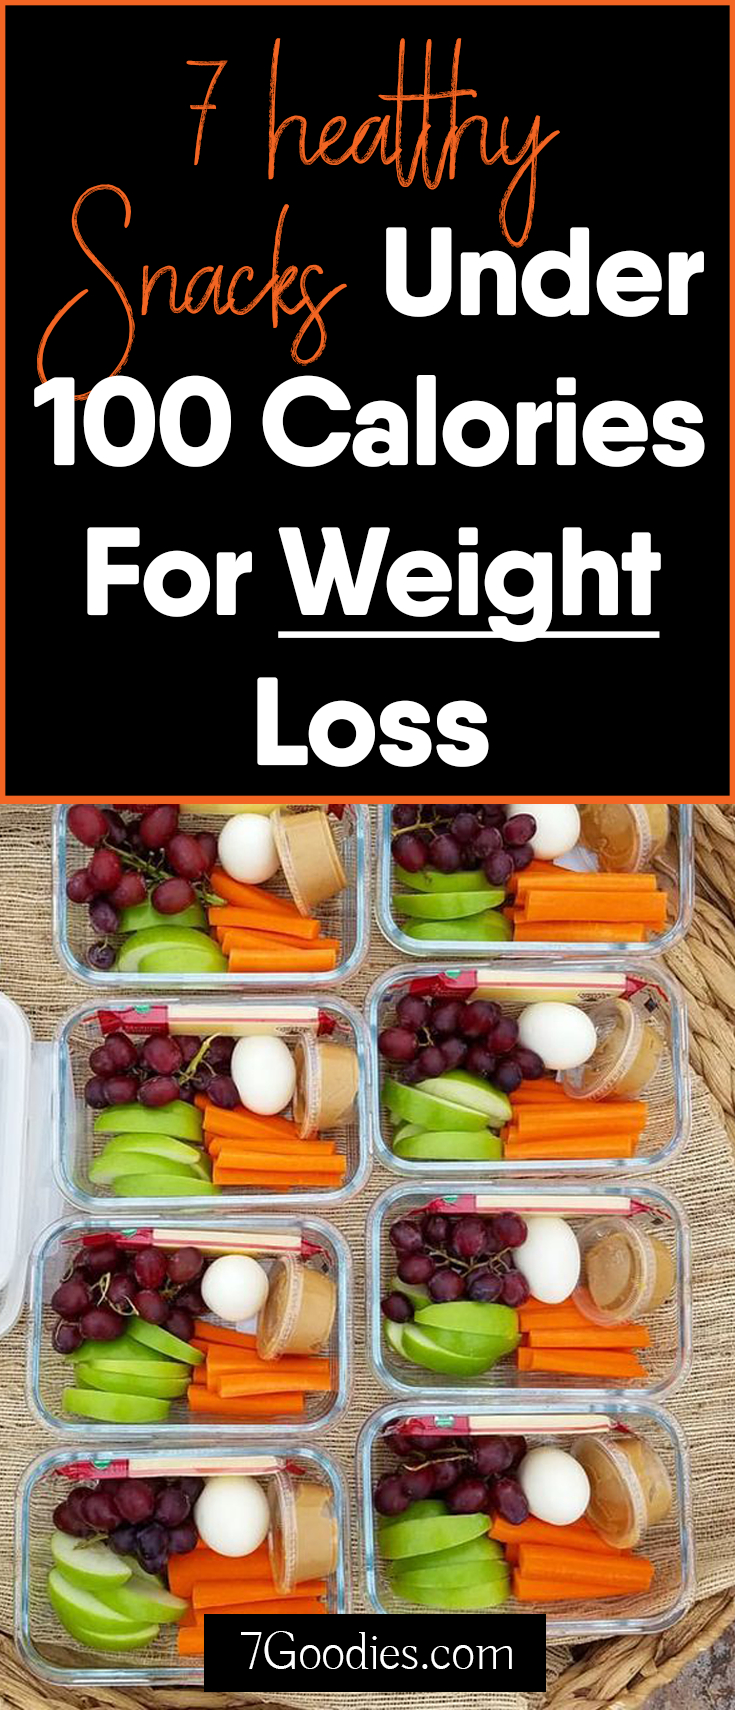 10 Wonderful Snack Ideas For Weight Loss 7 healthy snacks under 100 calories for weight loss 2021